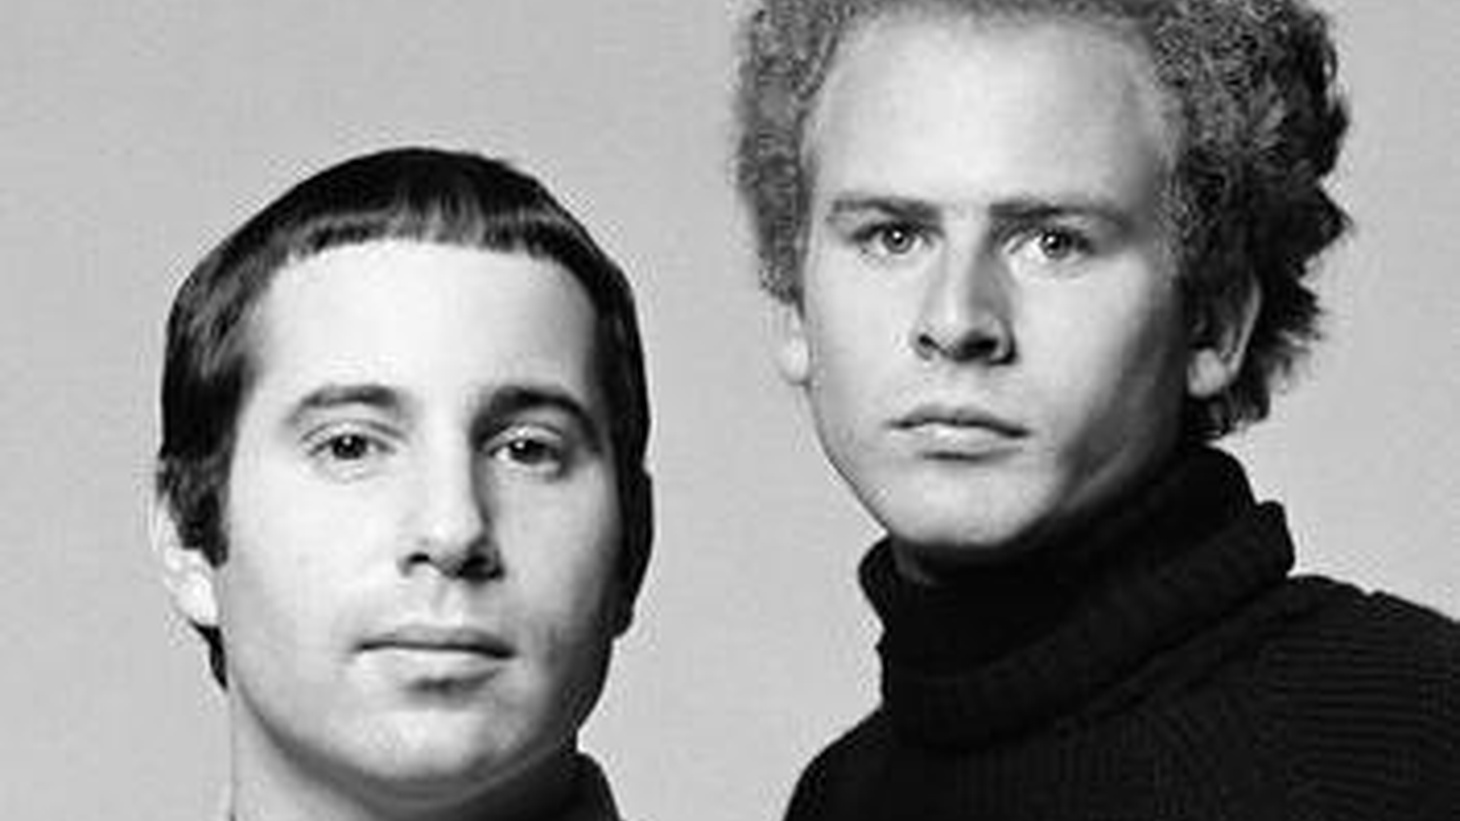 In 1969, Paul Simon and Art Garfunkel hit the road -- then went on a 13-year hiatus. We present an hour of musical highlights from the tour and archival interviews. (Airs noon-1pm; preempts To the Point)